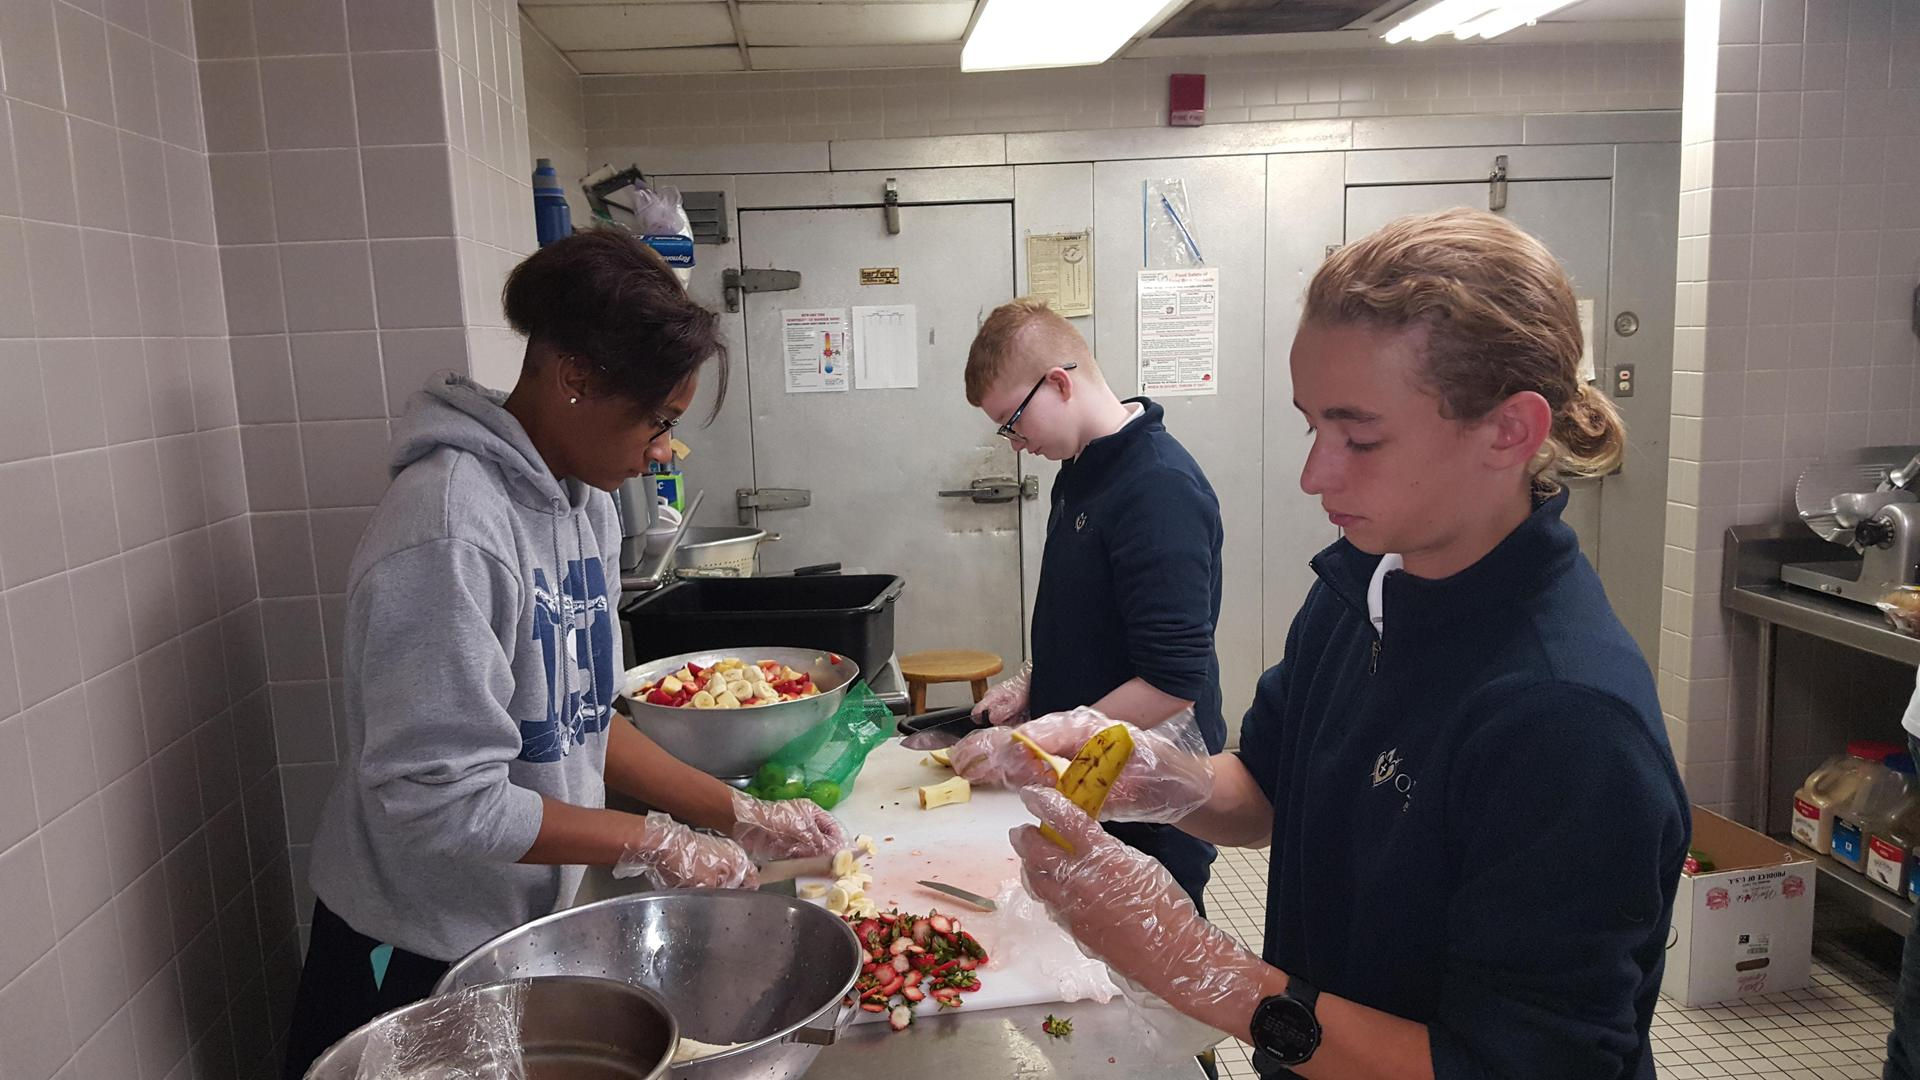 Finn volunteered at a local soup kitchen, helping to make meals for the hungry, during Mission & Heritage Week.